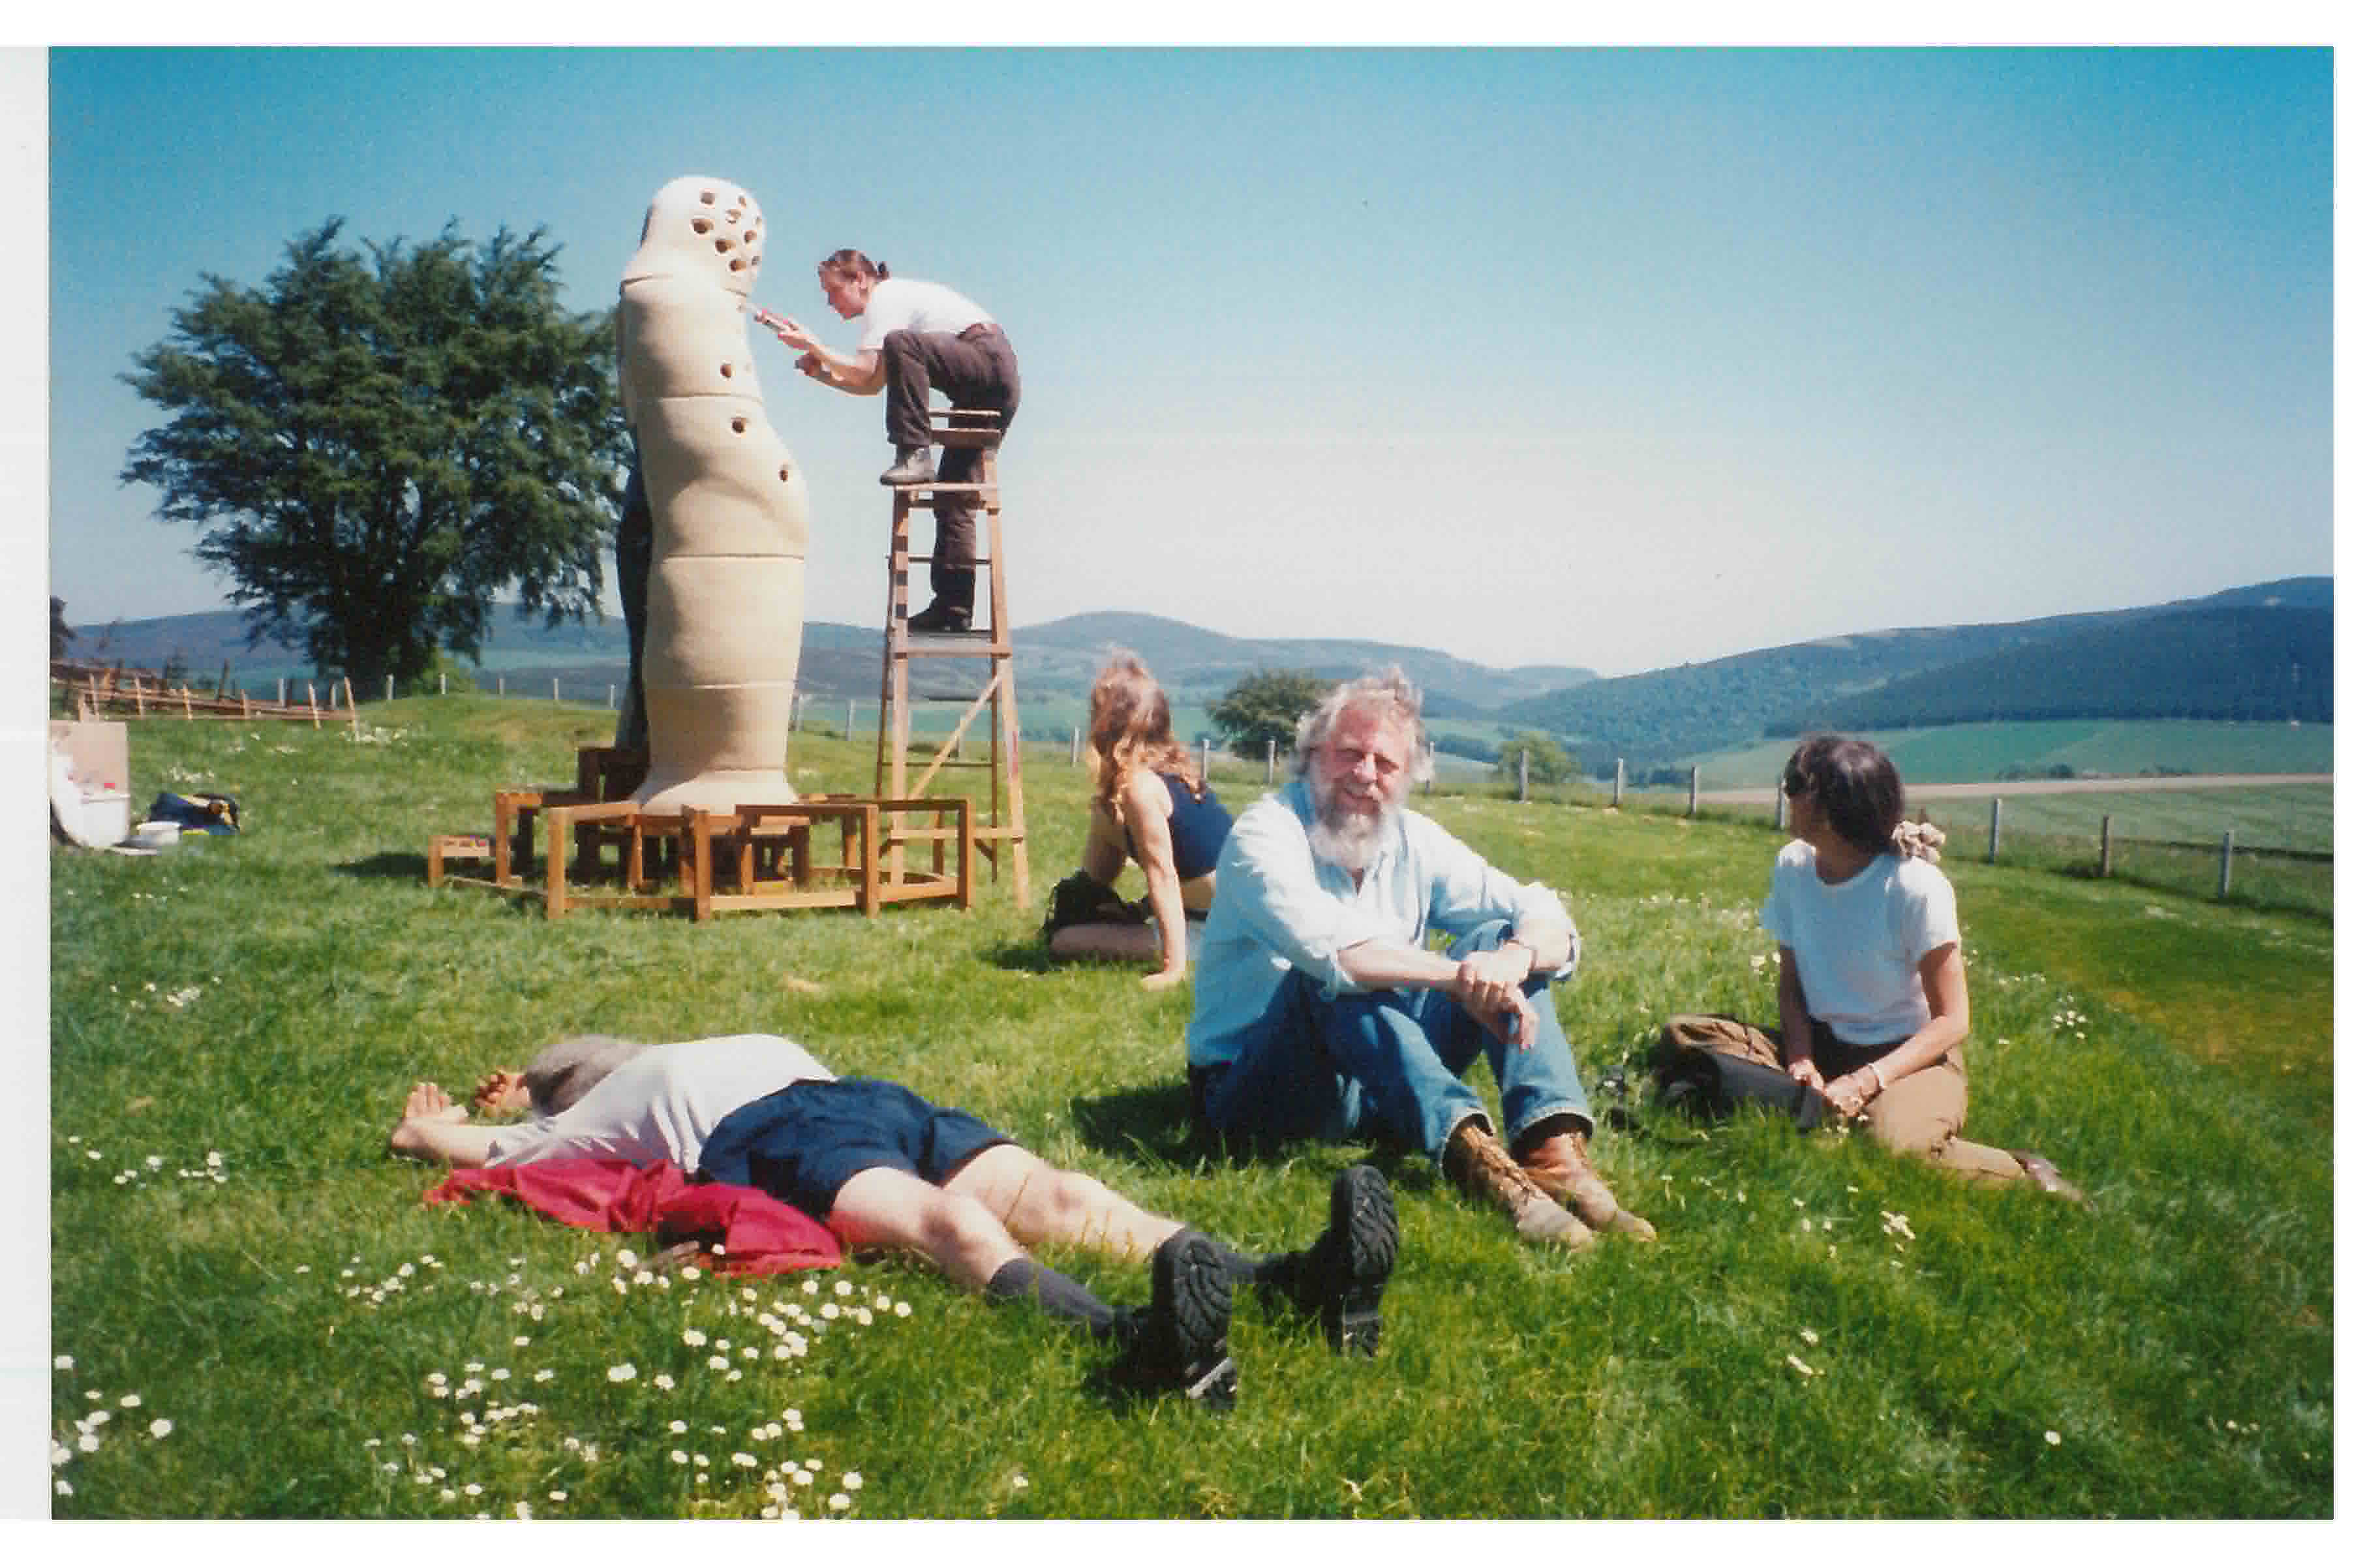 SSW chief technician Peter Smith, centre, with Peter Bevan, on ladder and other artists installing SS08 Granite Granite Carving Symposium (1995). Photo: Scottish Sculpture Workshop